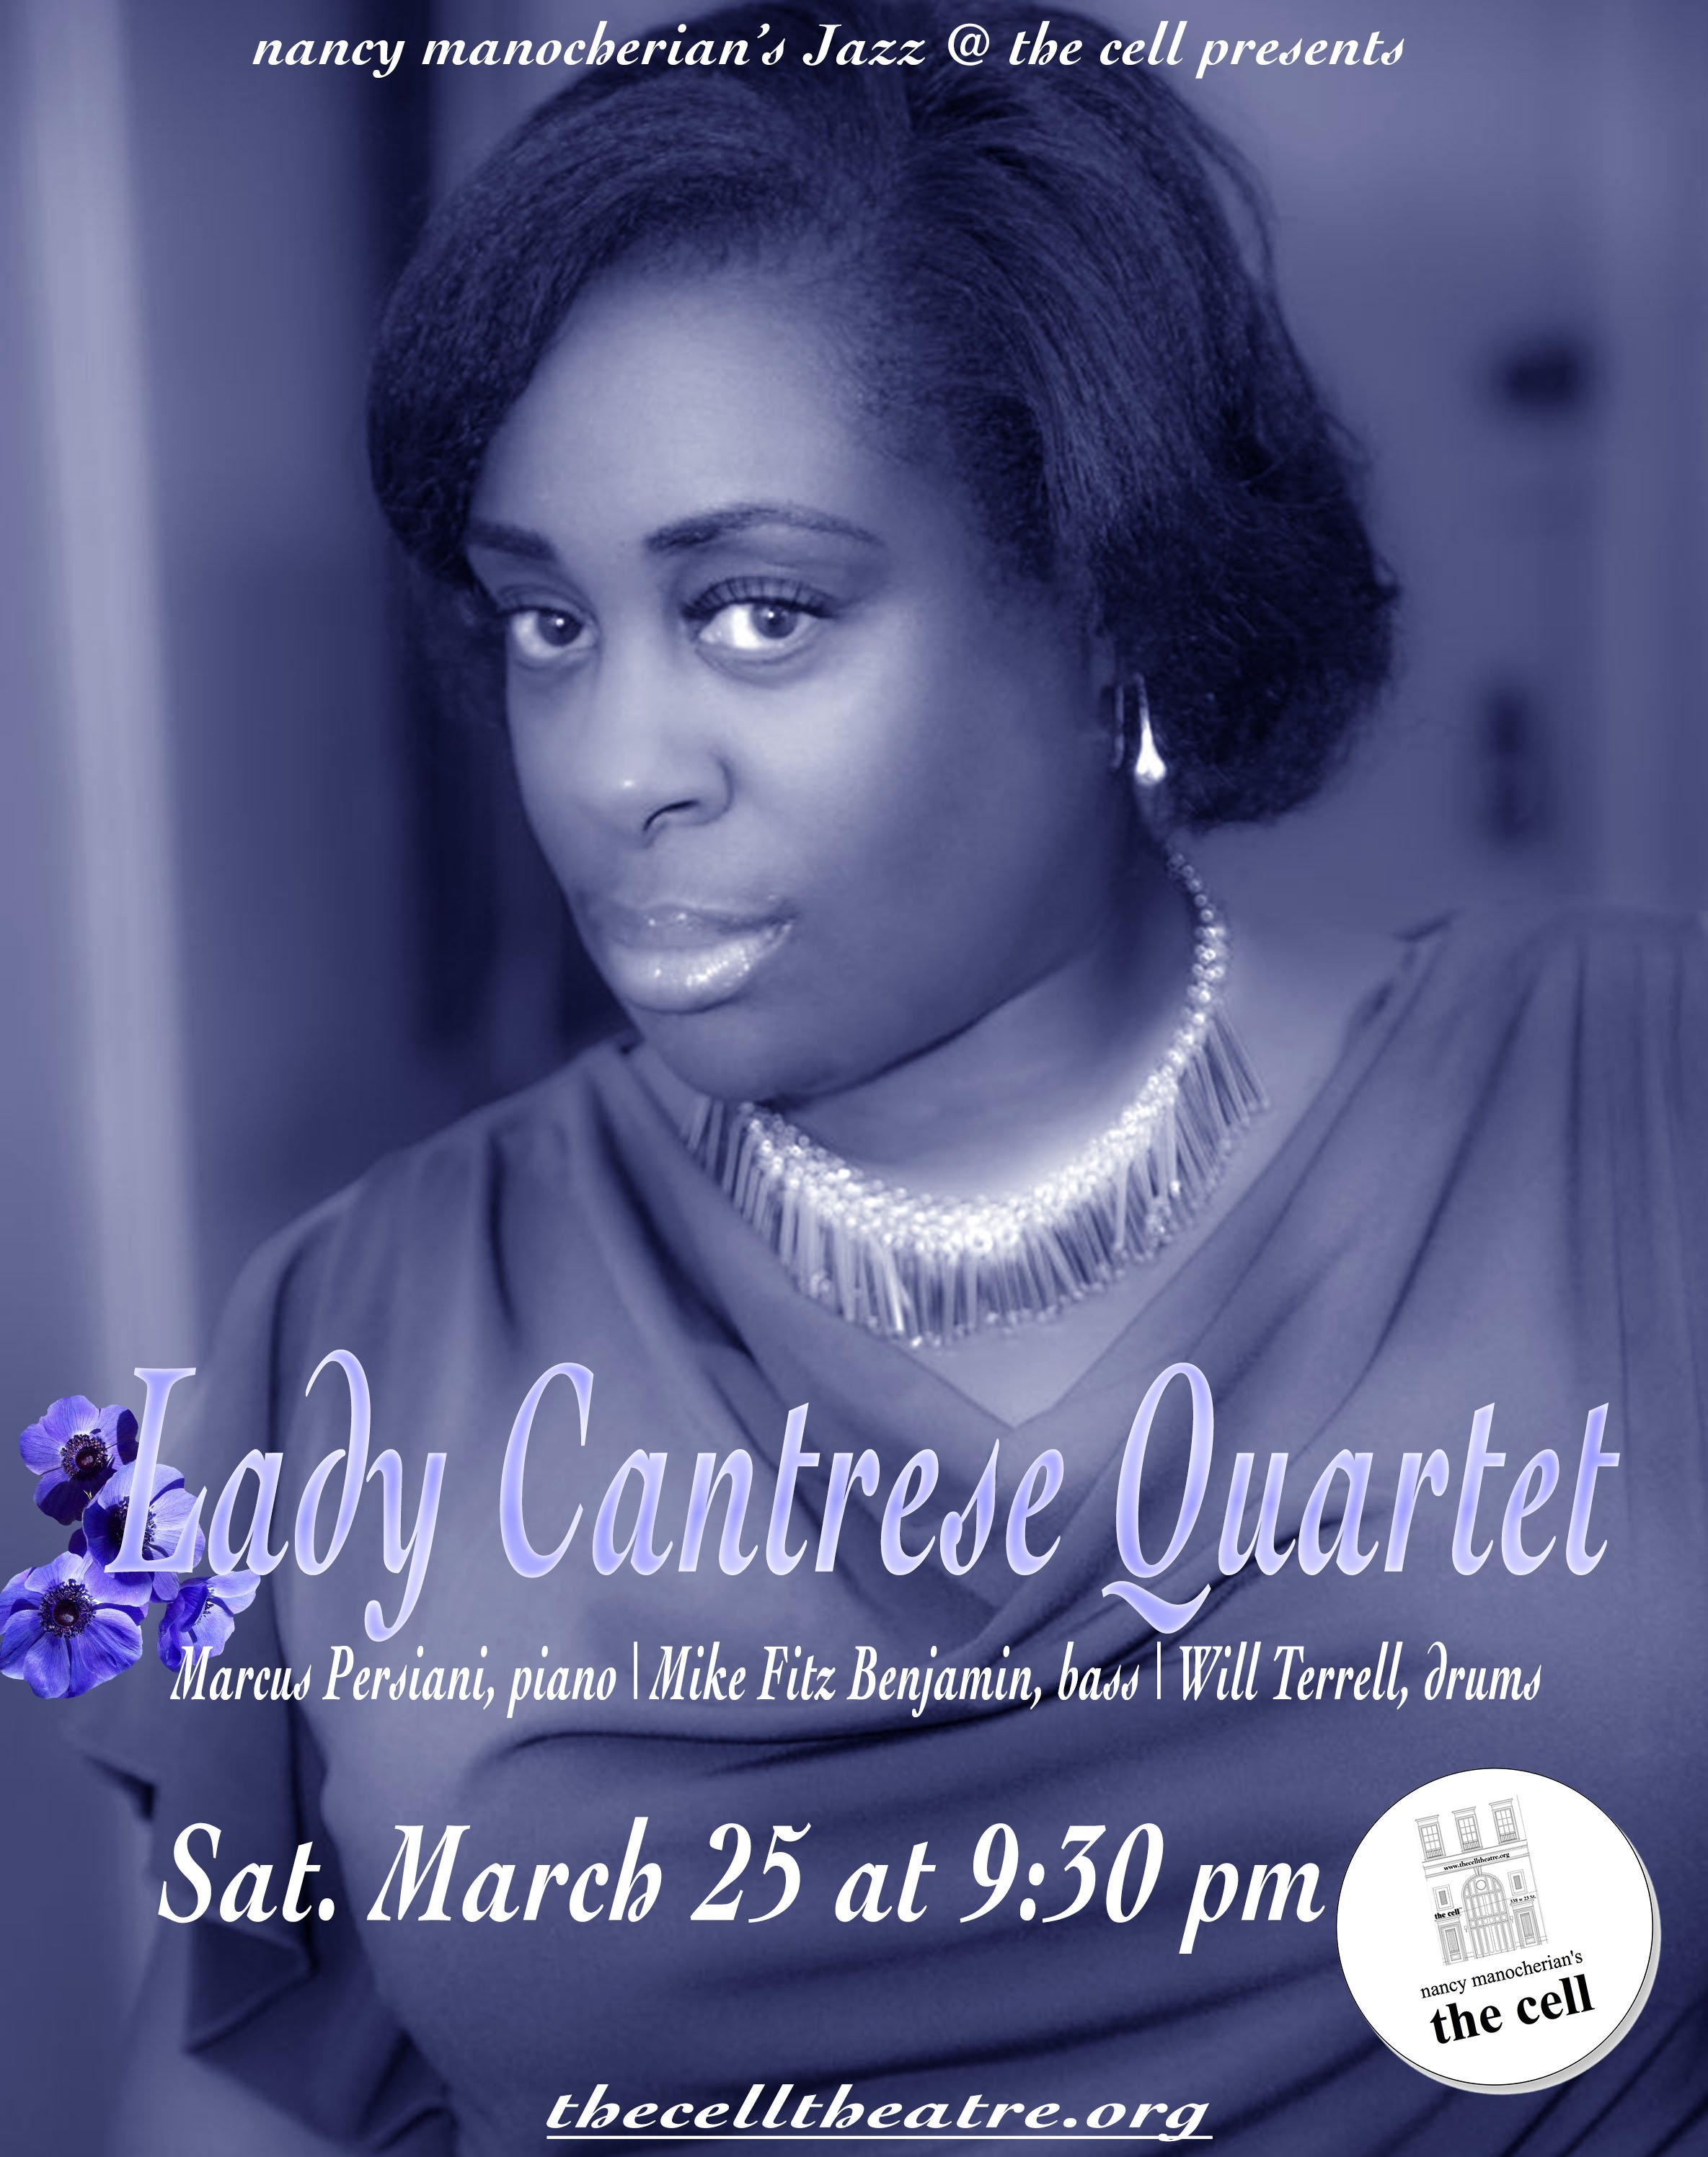 "With her elegant and sophisticated style,  Lady Cantrese  has entertained audiences since she was a youth. Harlem grown, Cantrese began singing in elementary school where she joined the school's first glee club. She's been singing ever since. In 2004, Cantrese released her debut CD All of Me, a collection of standards produced by Hamiet Bluiett. She has also recorded with renowned jazz artist Olu Dara on two of his CDs and a single ""Just like John"" for HBO."